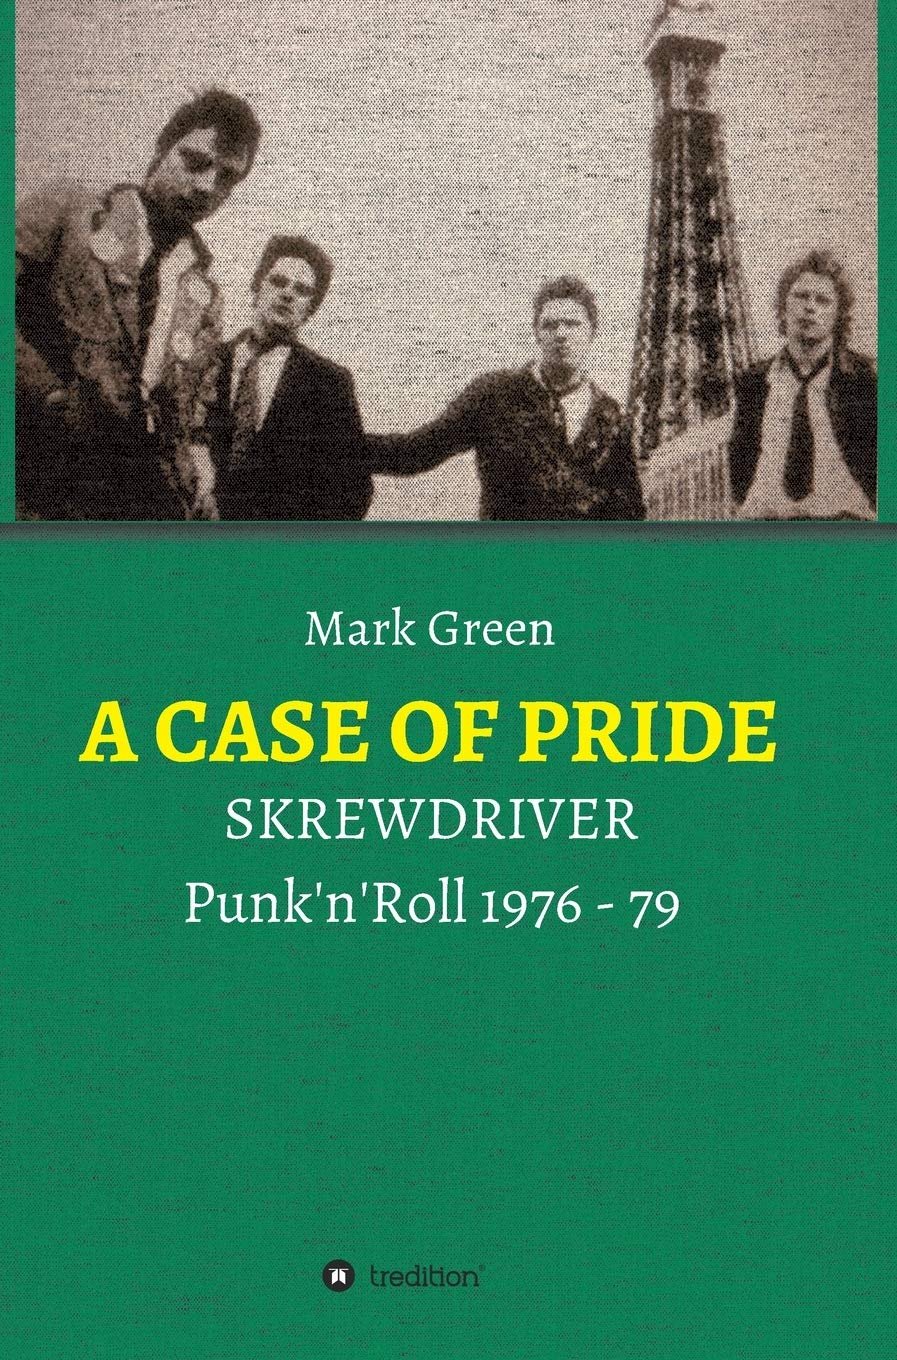 Image OfA CASE OF PRIDE: SKREWDRIVER - Punk'n'Roll 1976 - 79